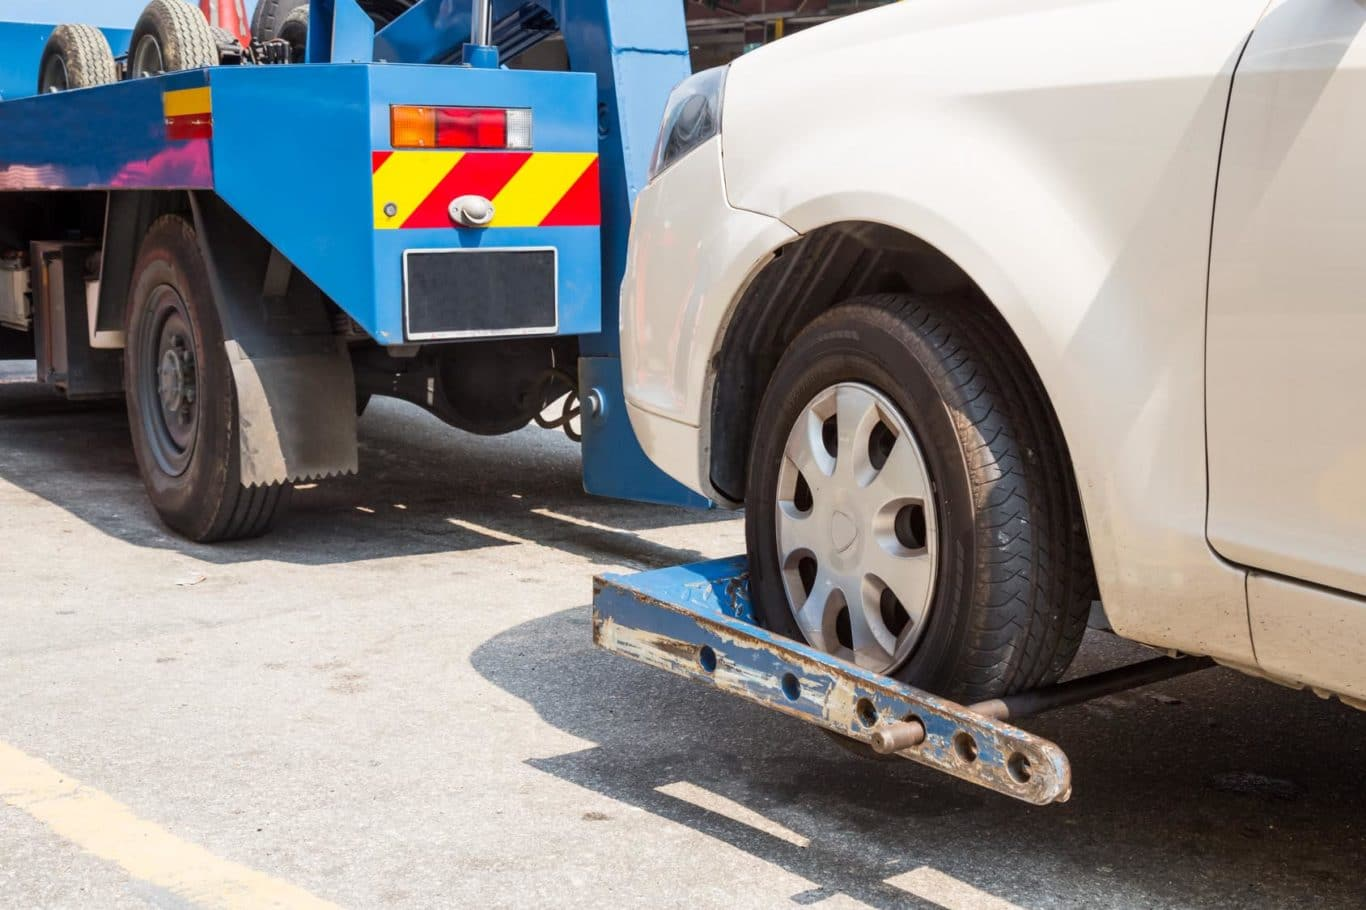 Navan expert Breakdown Assistance services